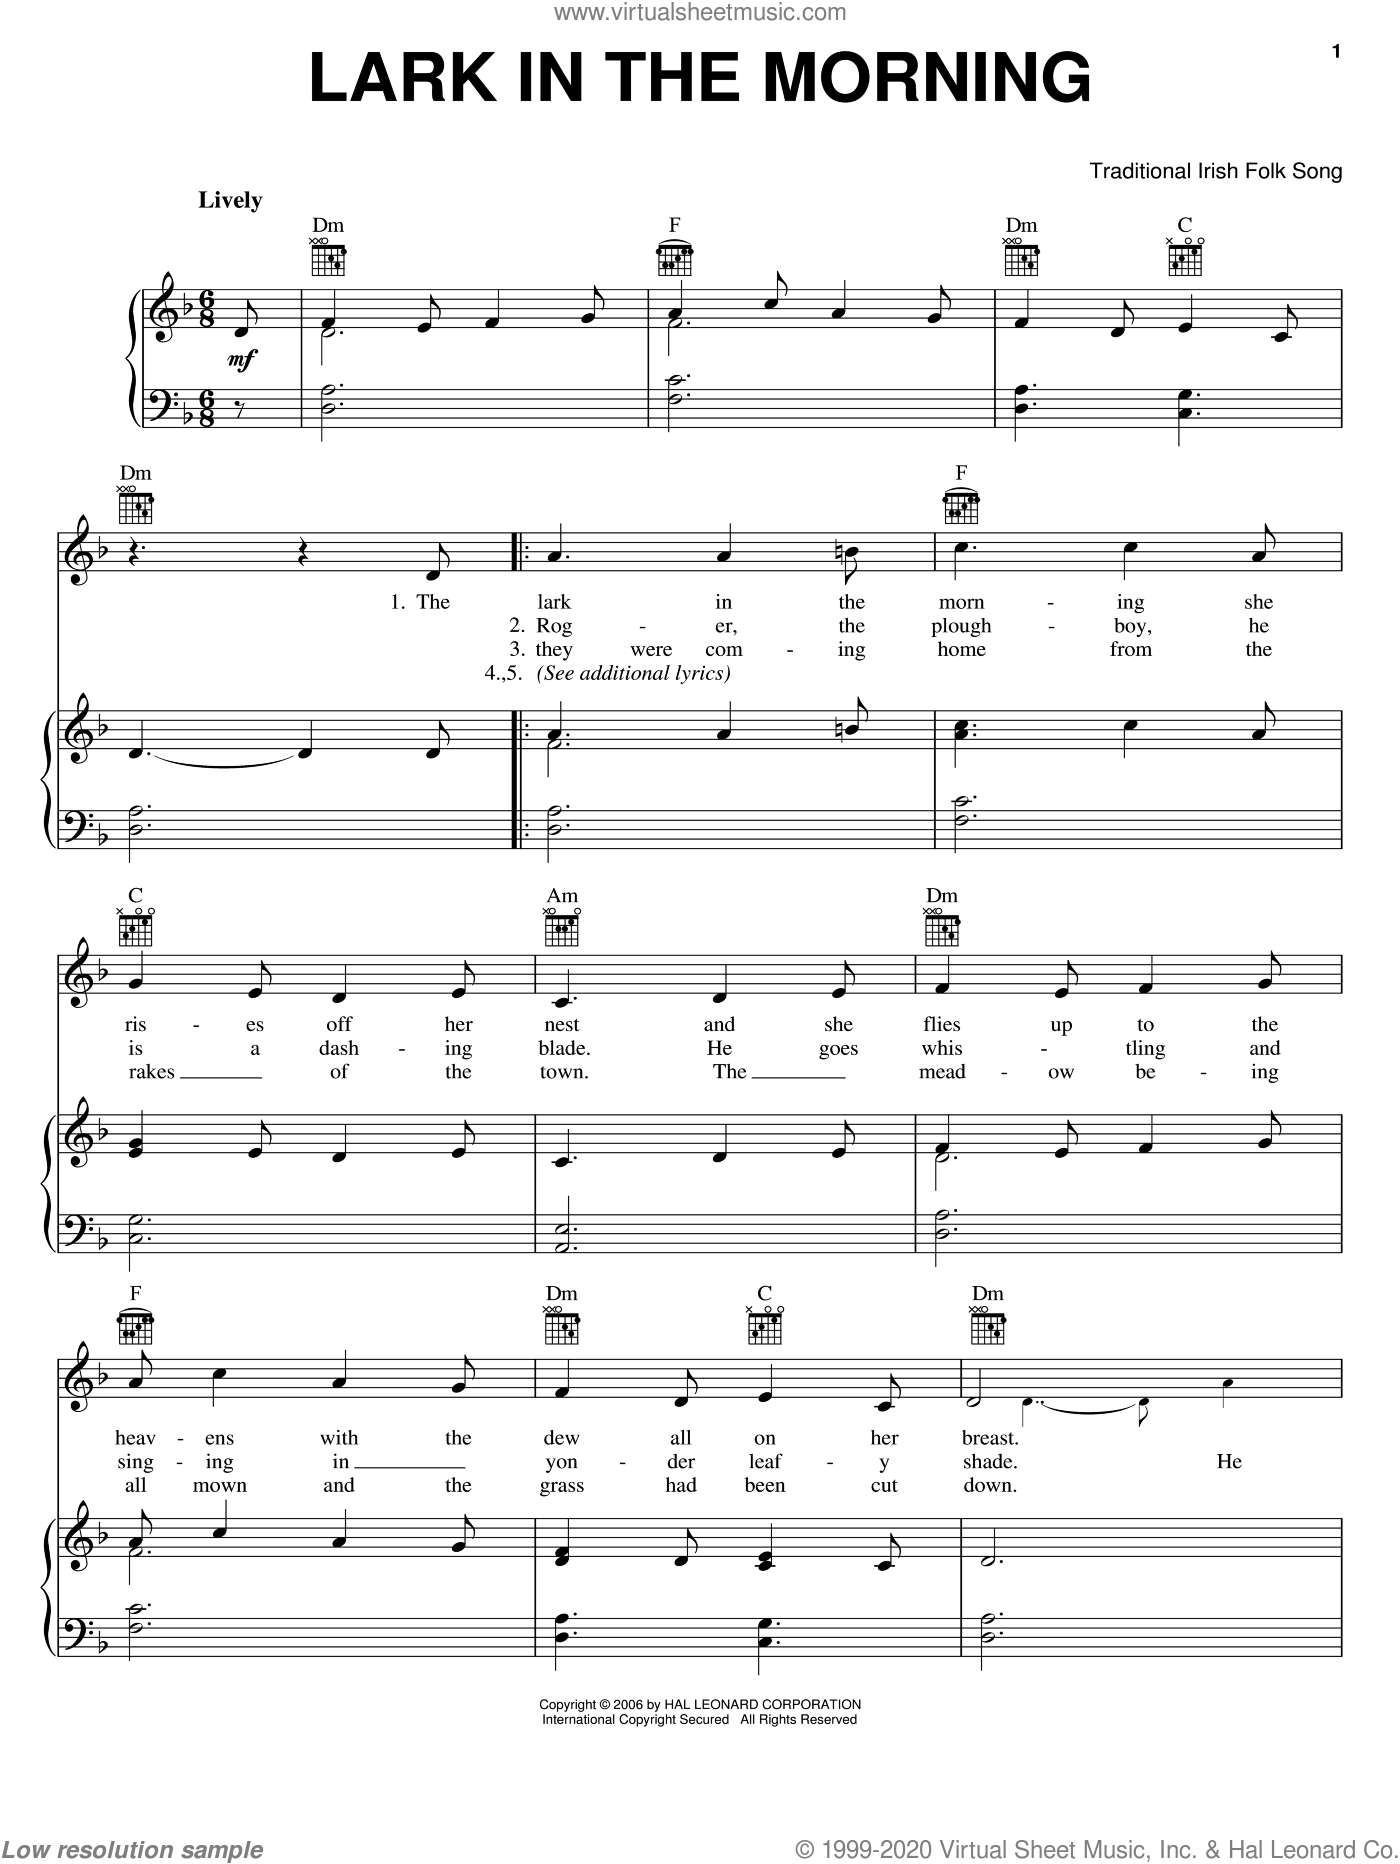 Lark In The Morning sheet music for voice, piano or guitar, intermediate skill level